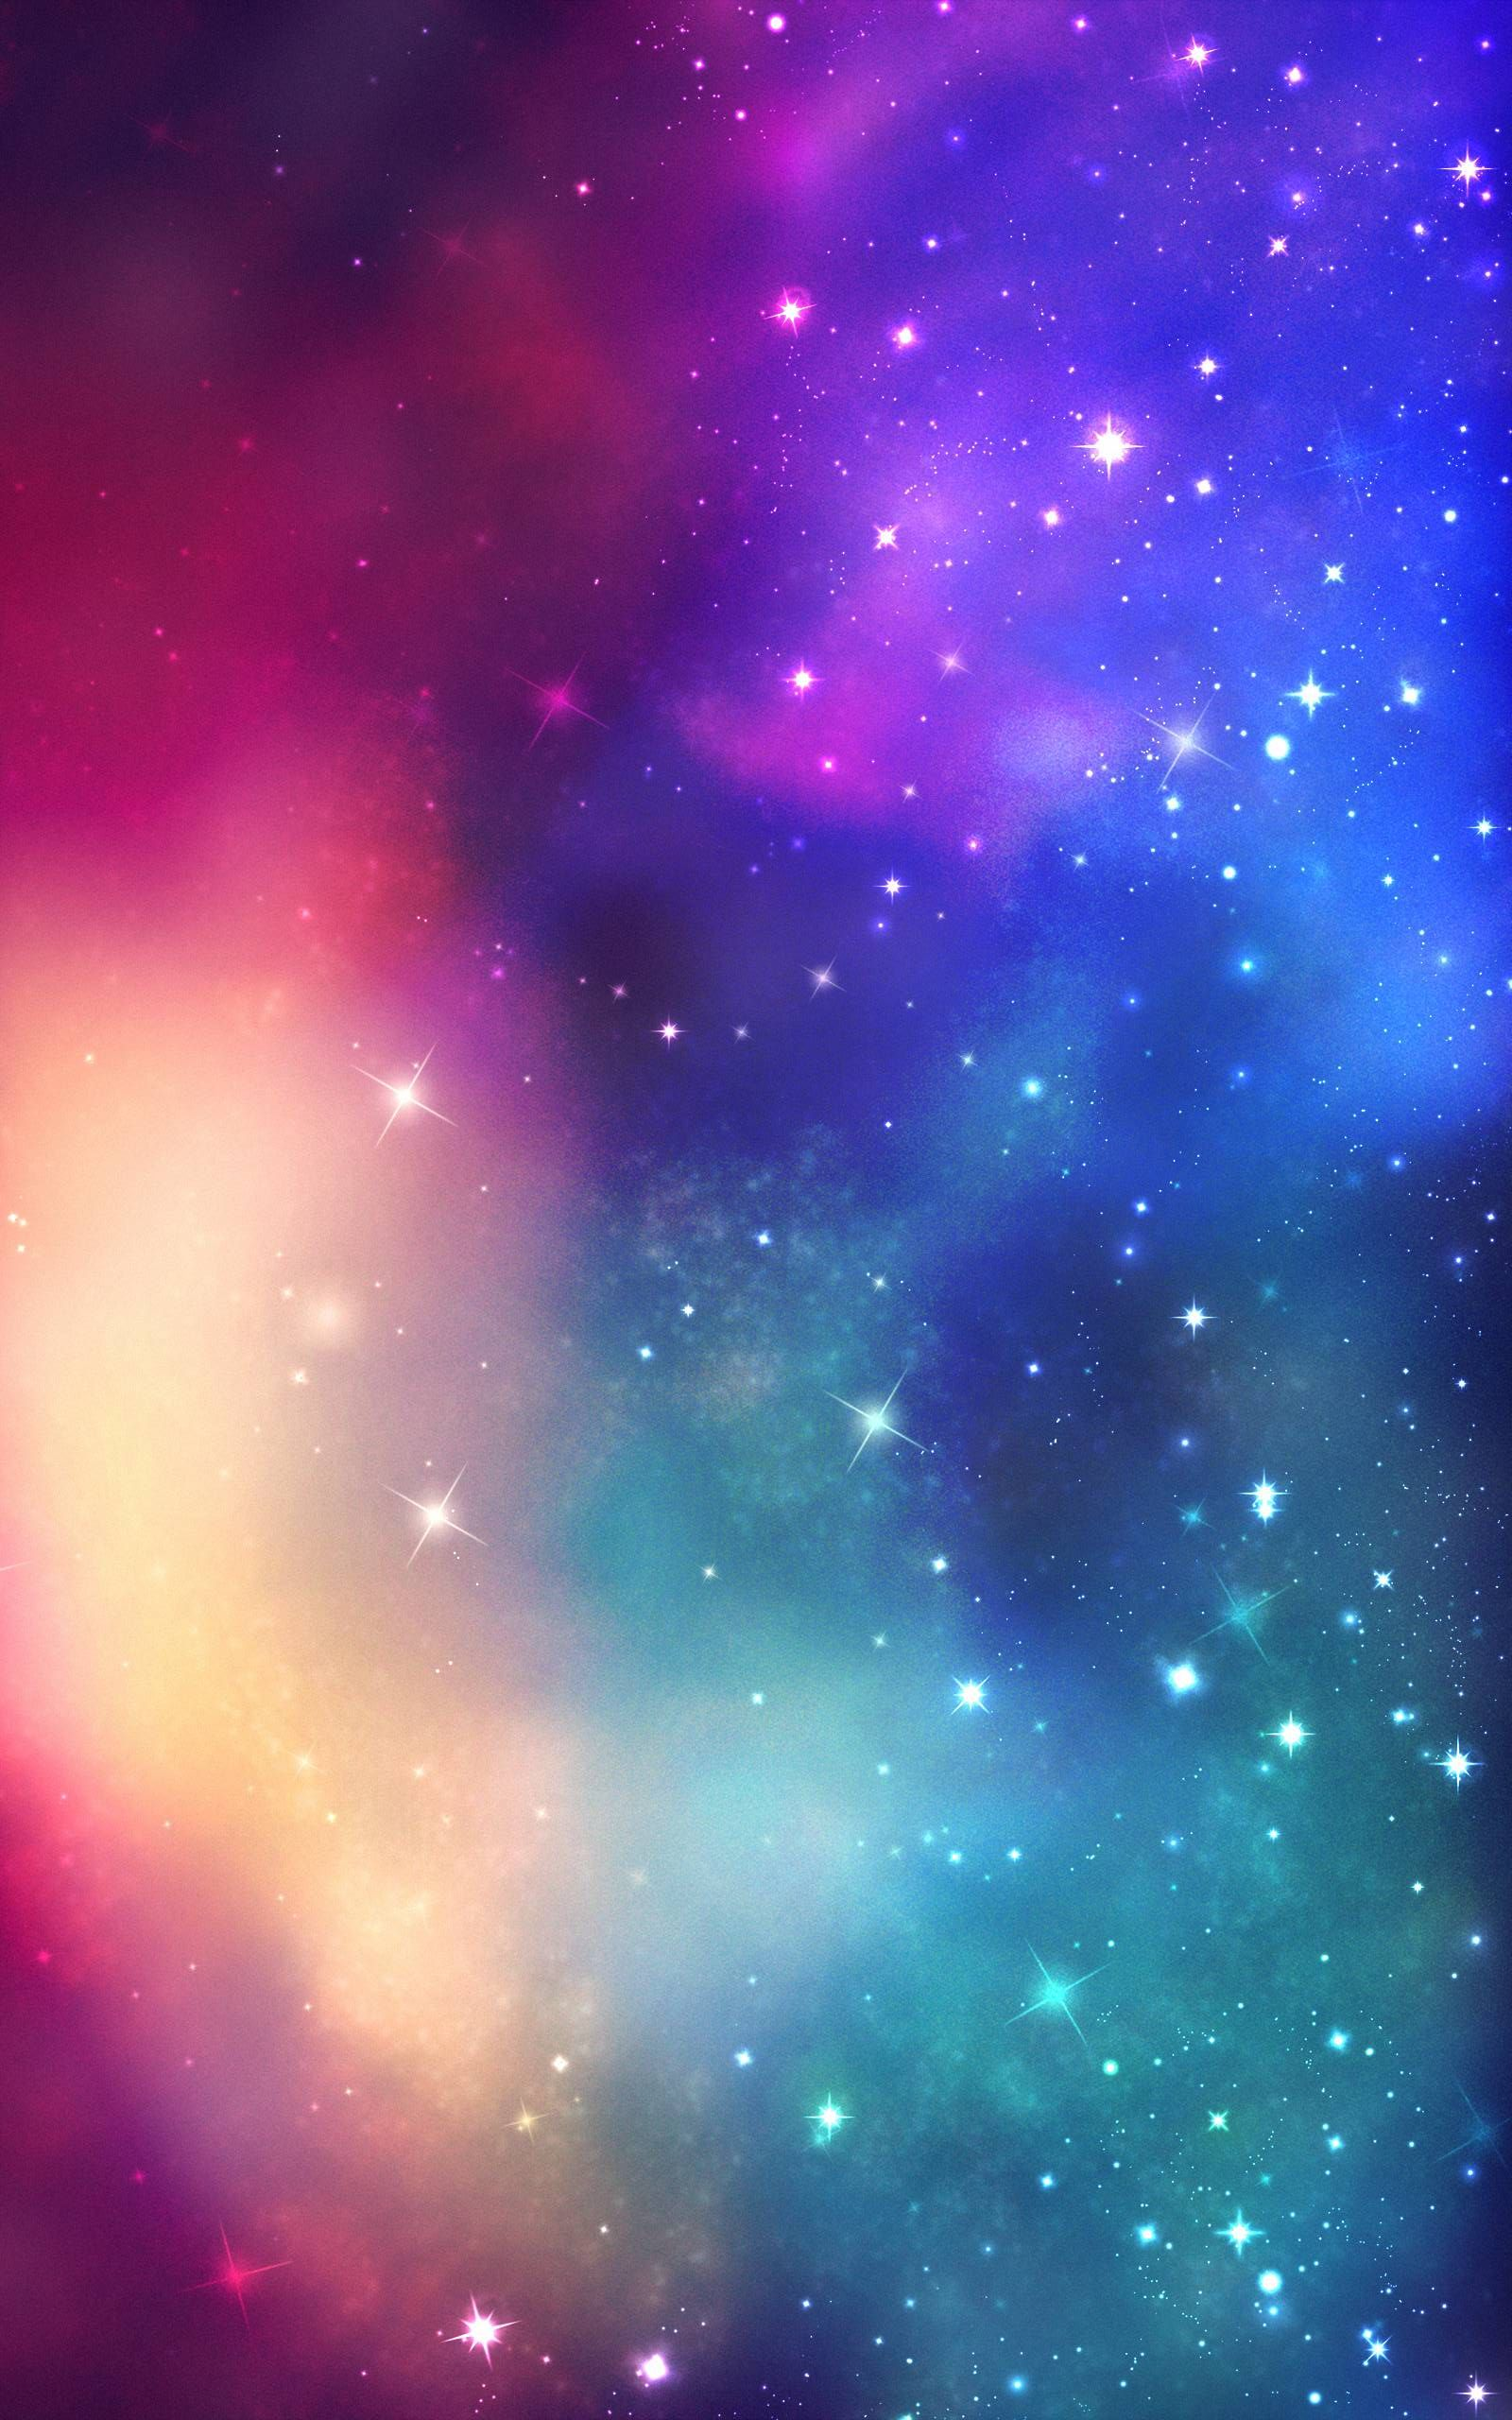 Outer space stars wallpapers best iphone wallpaper outer space stars wallpapers is high definition phone wallpaper you can make this wallpaper for your iphone x backgrounds tablet android or ipad voltagebd Image collections